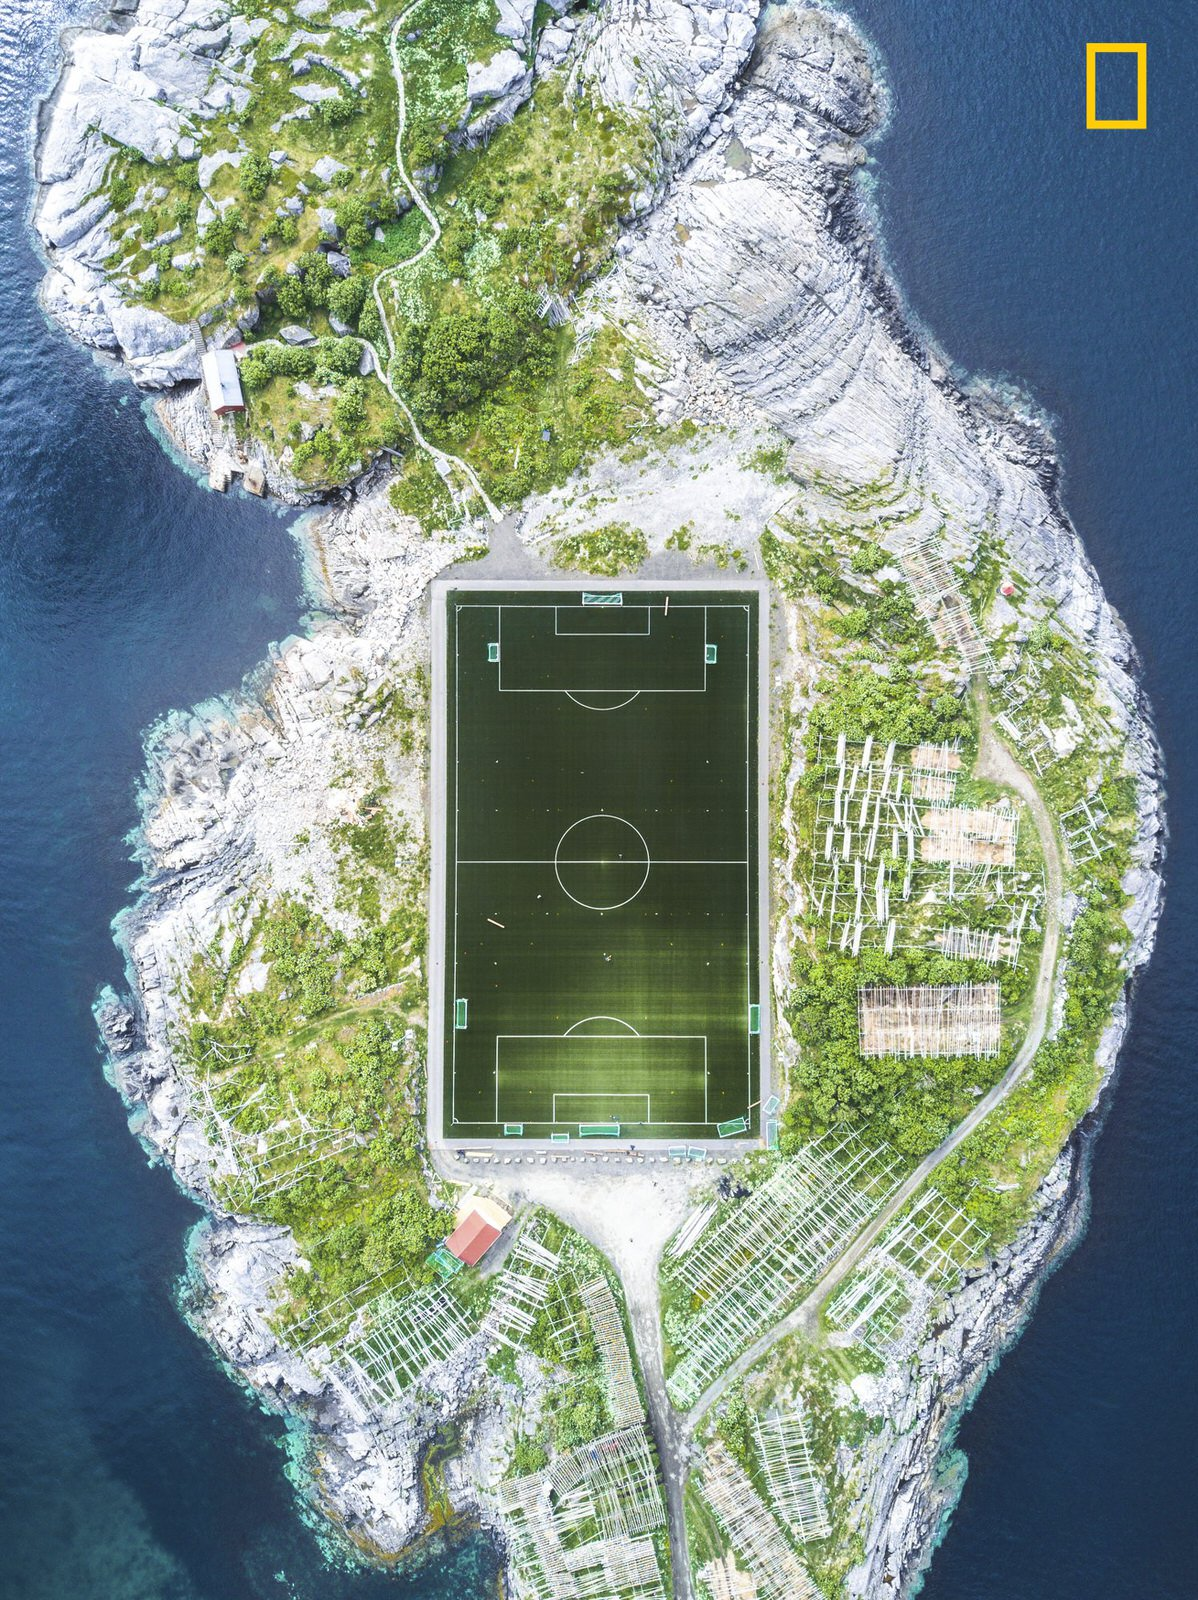 "3rd Place. Photo and caption by Misha De-Stroyev/ National Geographic Travel Photographer of the Year.  Henningsvær Football Field . ""This football field in Henningsvær in the Lofoten Islands is considered one of the most amazing fields in Europe, and maybe even in the world. The photo was taken during a 10-day sailing trip in Norway in June 2017. We arrived at Henningsvær after a week of sailing through the cold and rainy weather. Upon our arrival, the weather cleared up. I was really lucky that the conditions were suitable for flying my drone, and I managed to capture this shot from a height of 120 meters."""